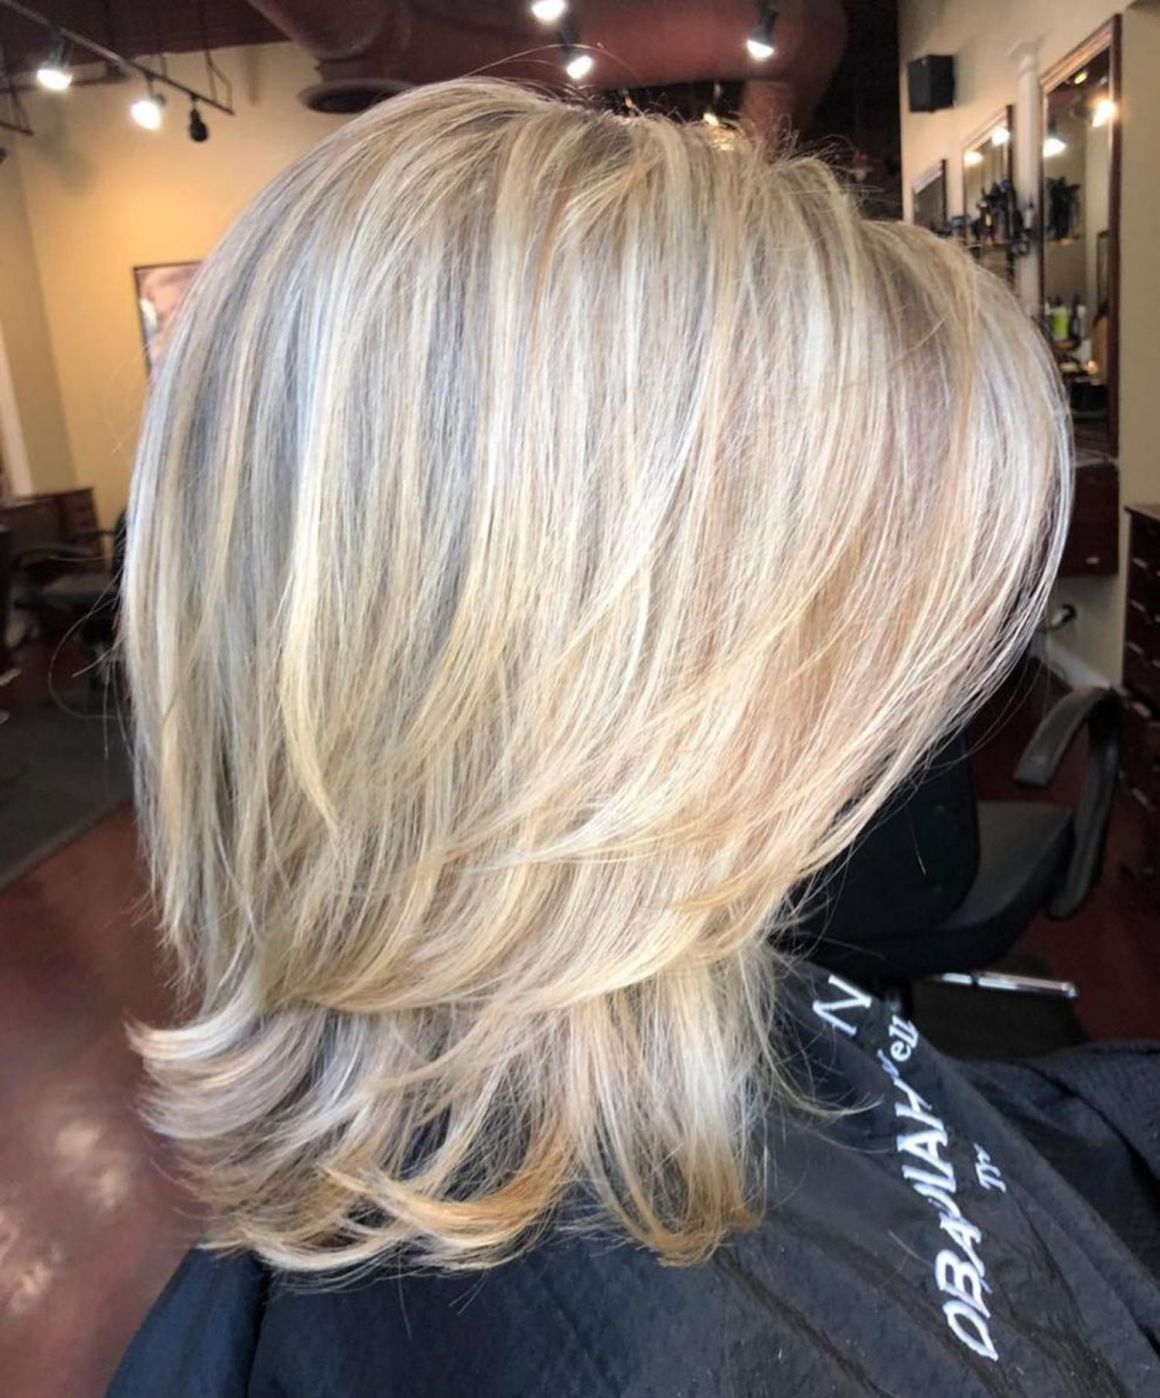 Above The Shoulder Feathered Blonde Haircut Medium Hair Styles Medium Layered Haircuts Medium Length Hair Styles